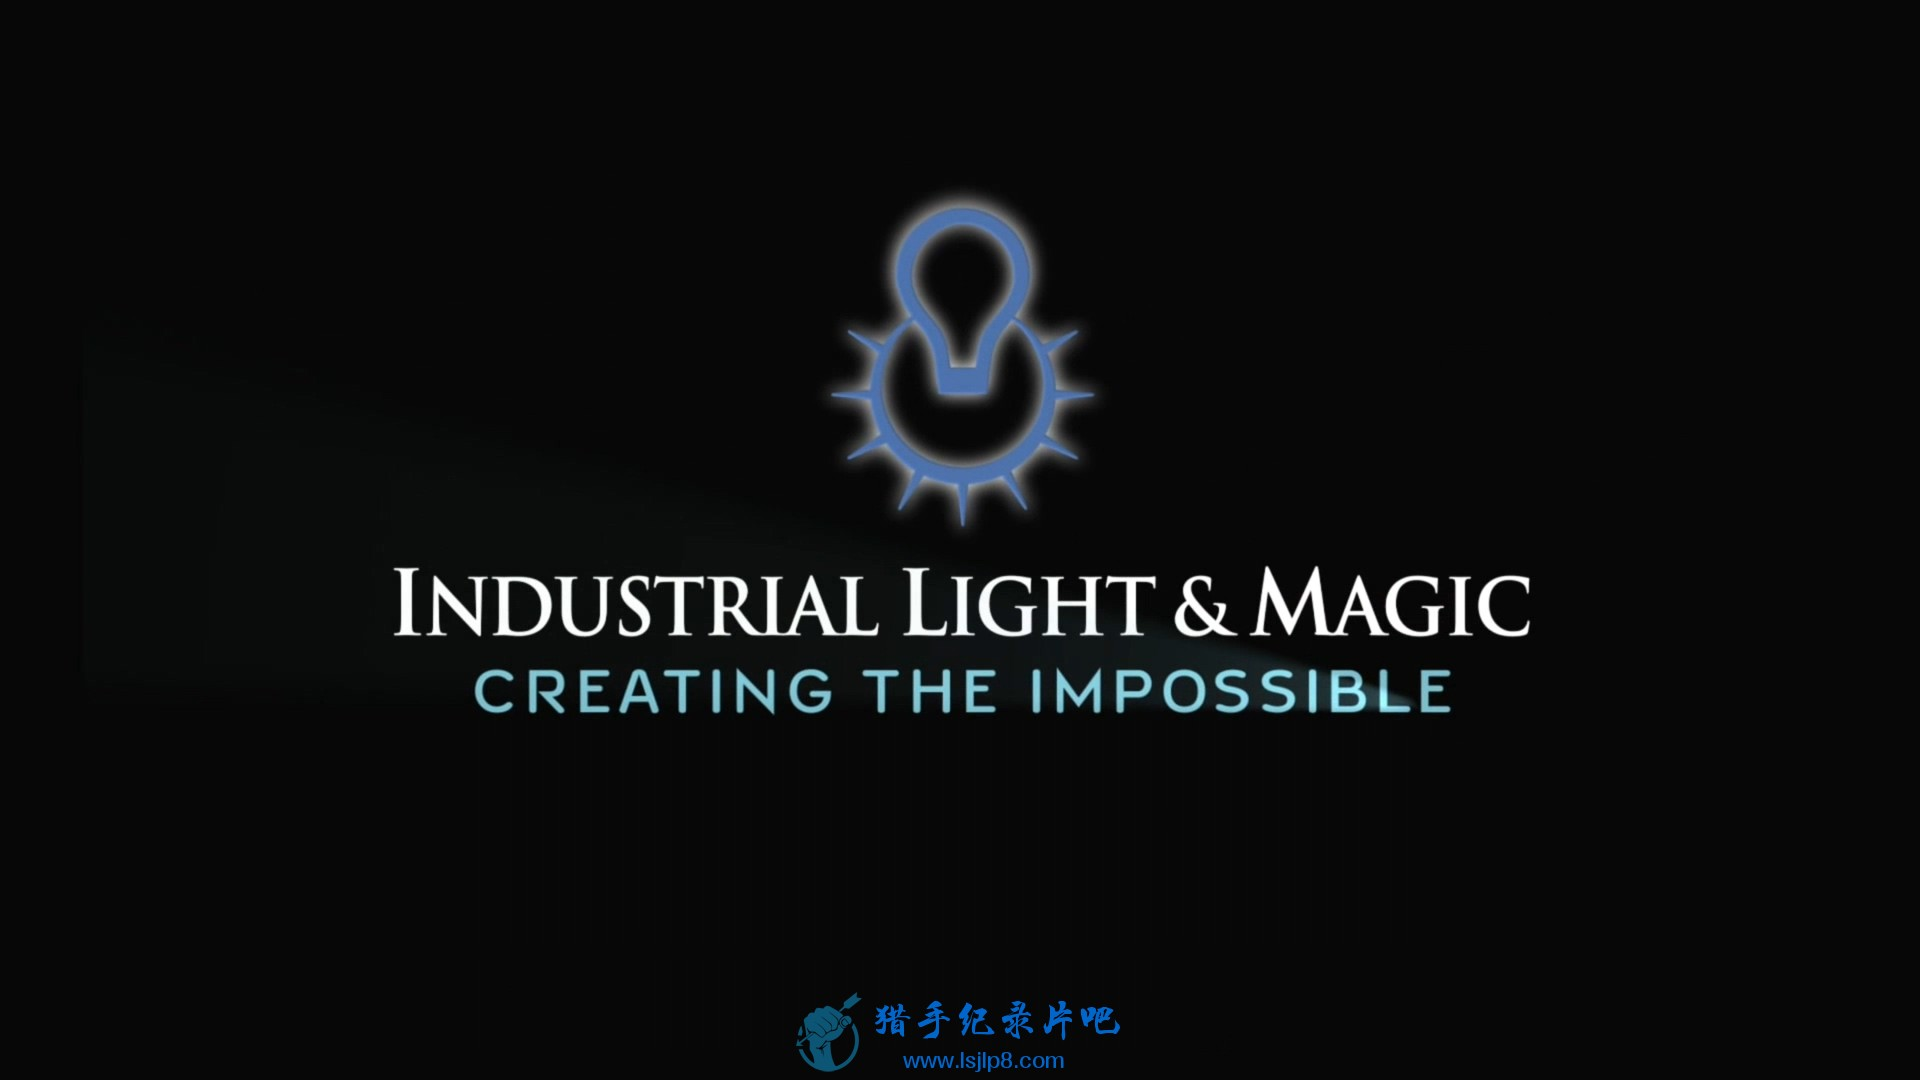 Industrial.Light.and.Magic.Creating.the.Impossible.2010.1080p.AMZN.WEBRip.DDP5.1.jpg